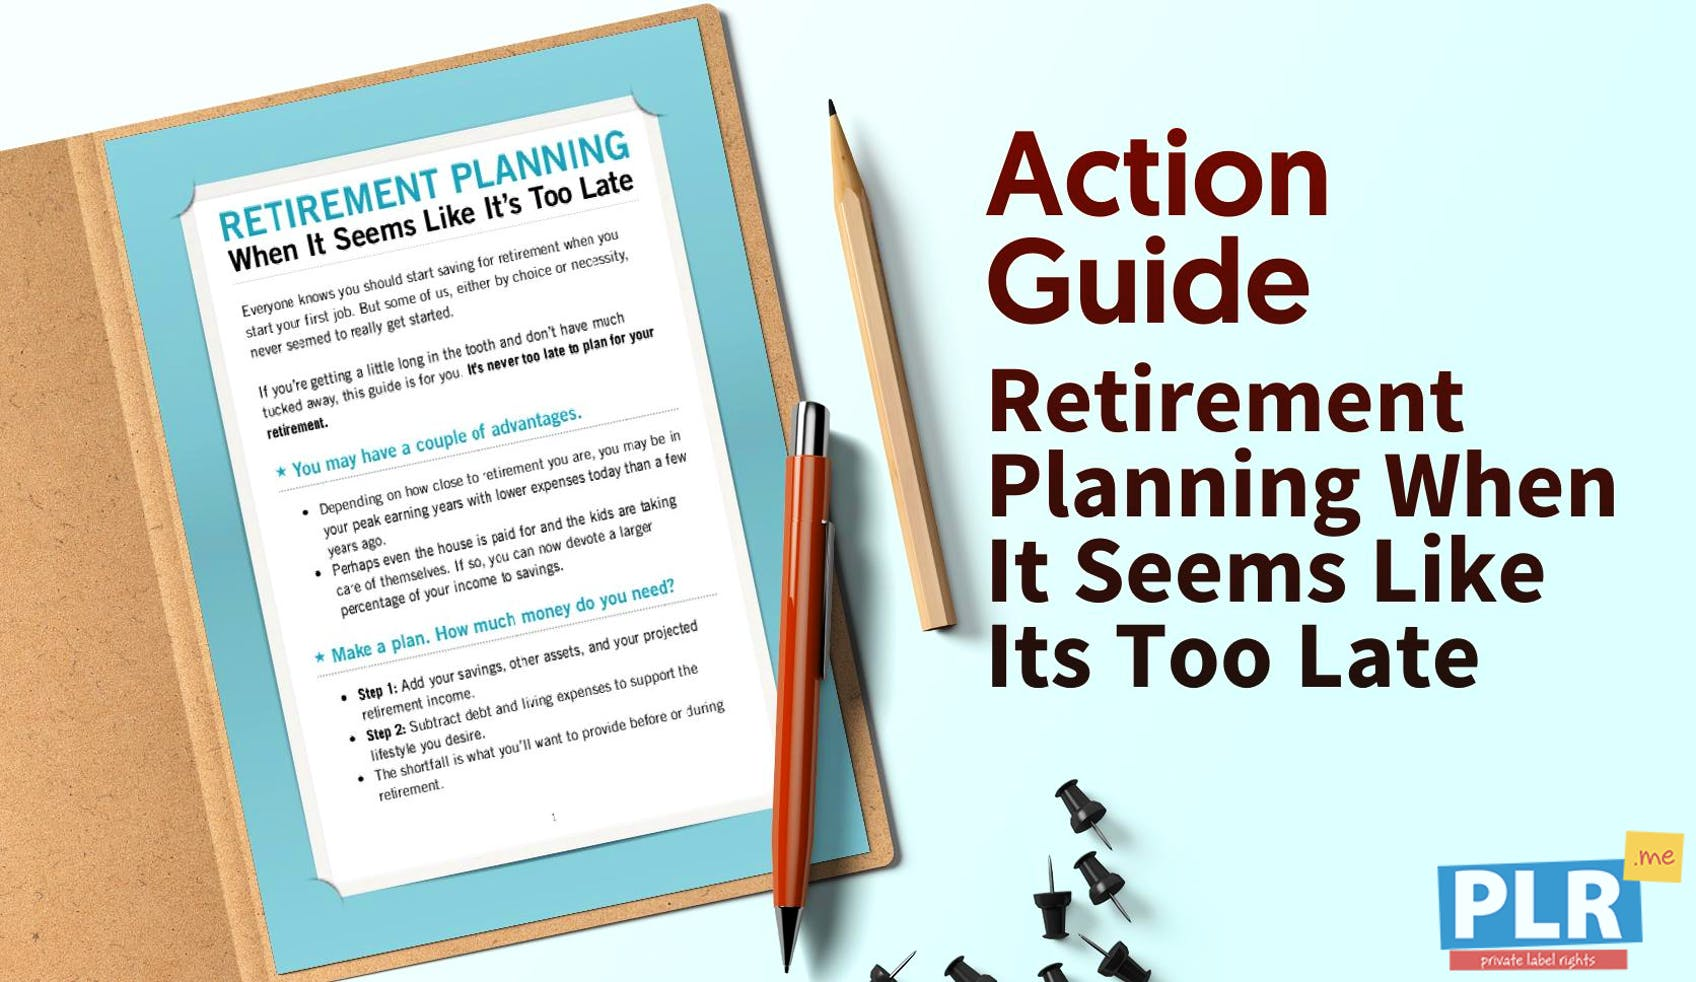 Retirement Planning When It Seems Like Its Too Late